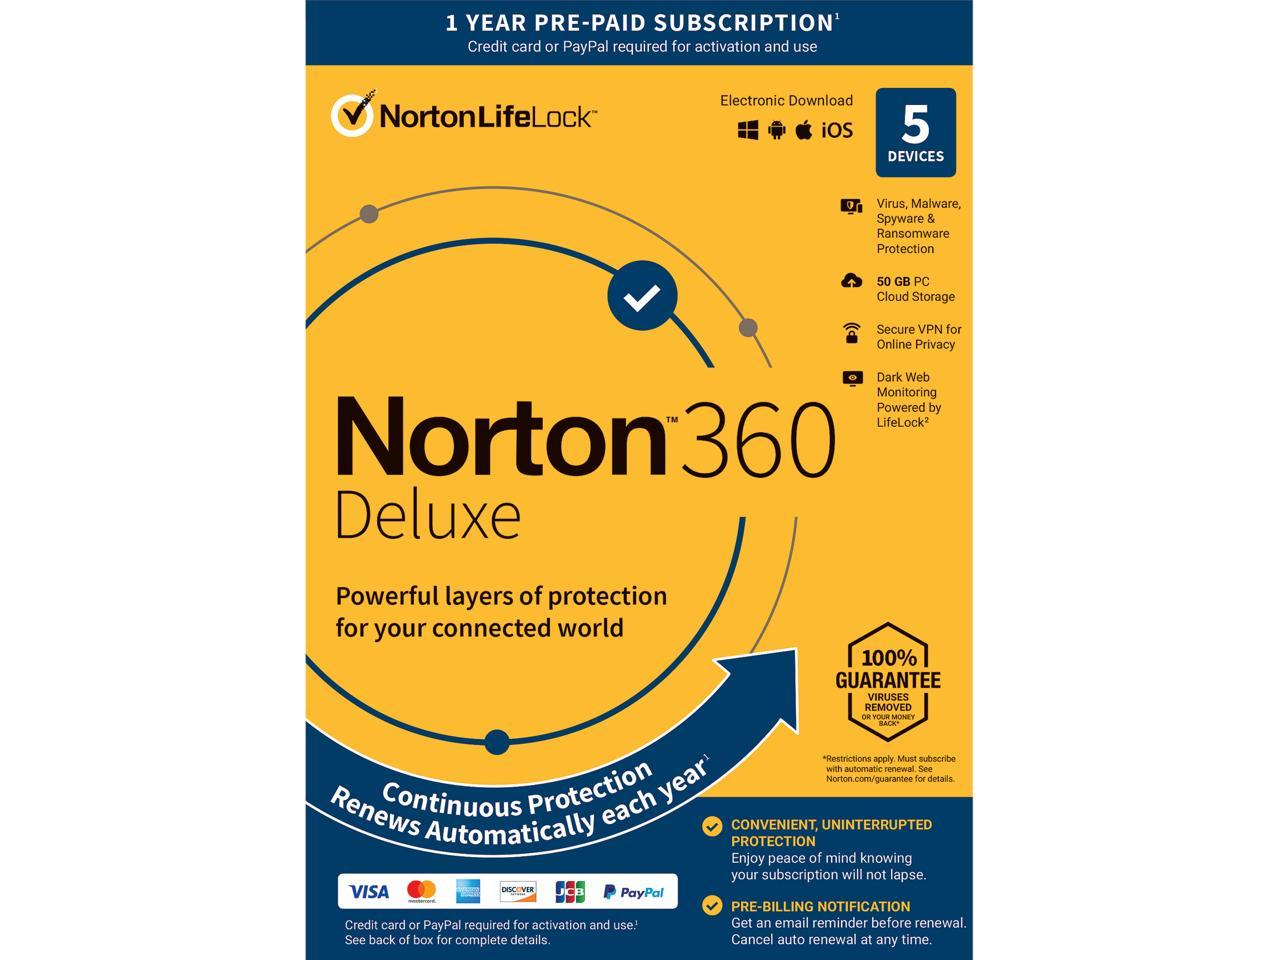 Norton 360 Deluxe - Antivirus Software for 5 Devices with Auto Renewal